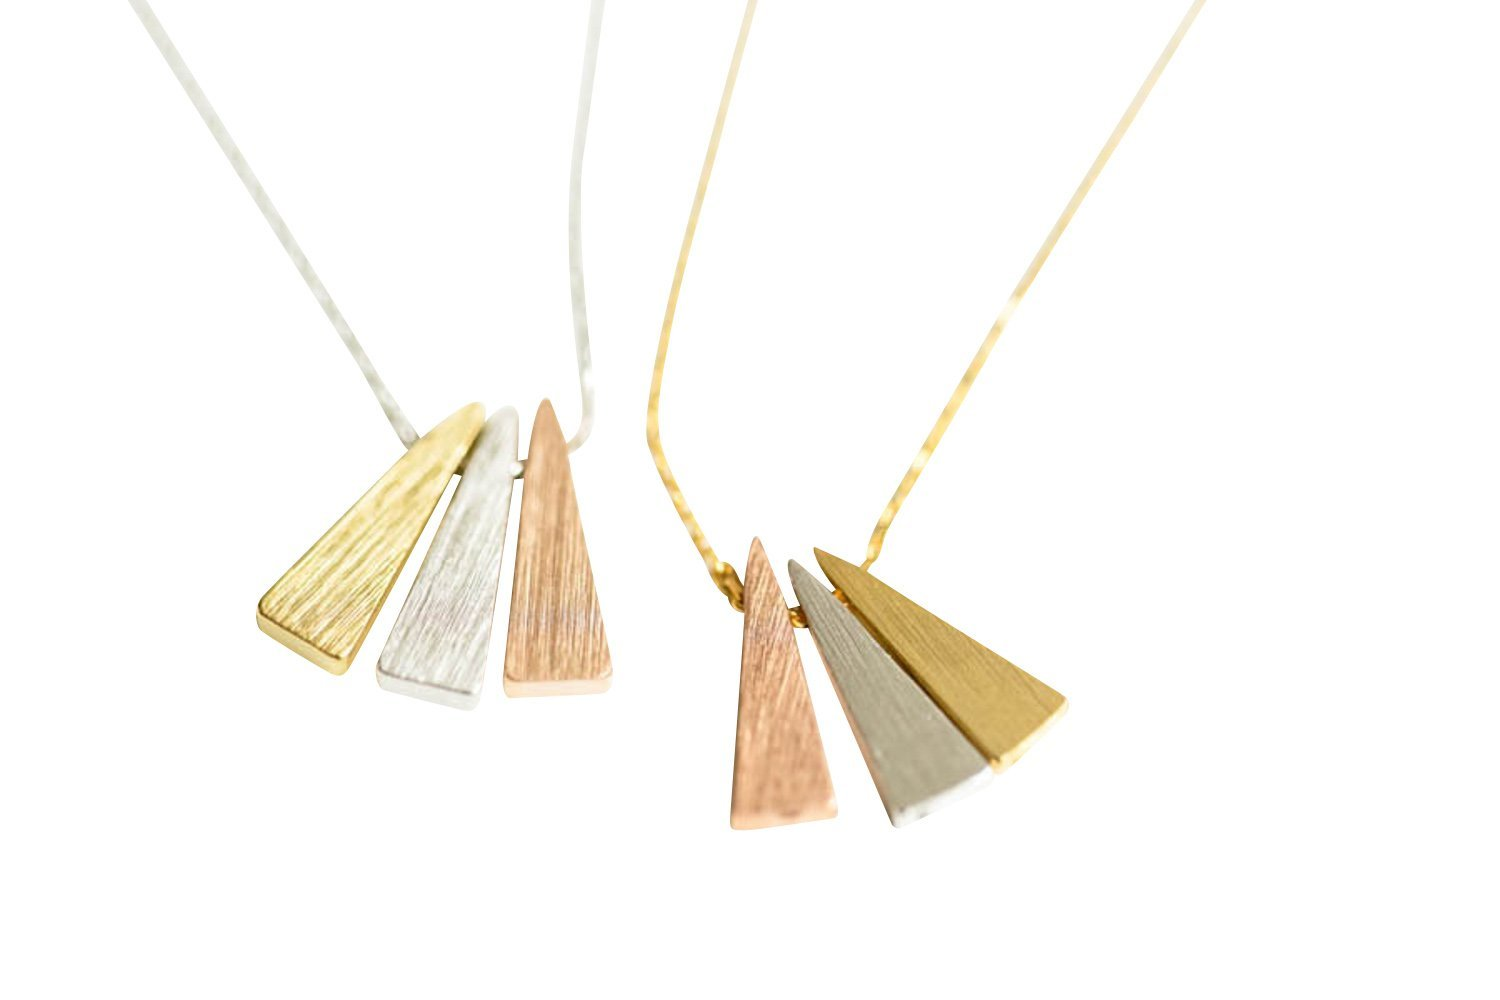 3 Triangle Necklace -GJ , triangle jewelry, triangle necklace, triangle shape jewelry, triangle shape necklace, triangle jewellry, geometric jewelry,